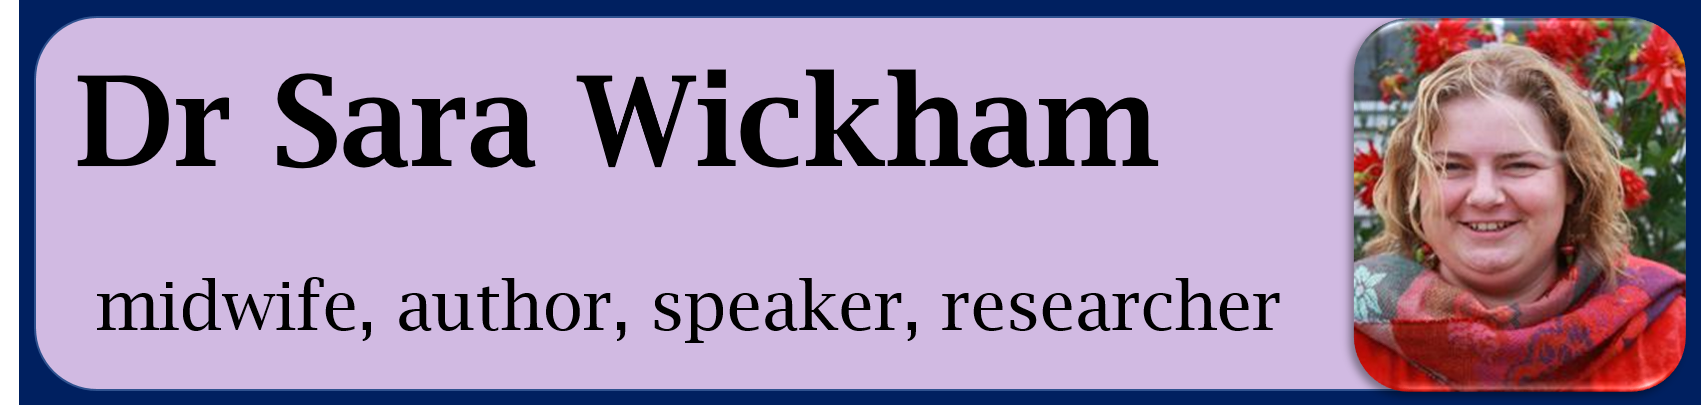 Dr Sara Wickham